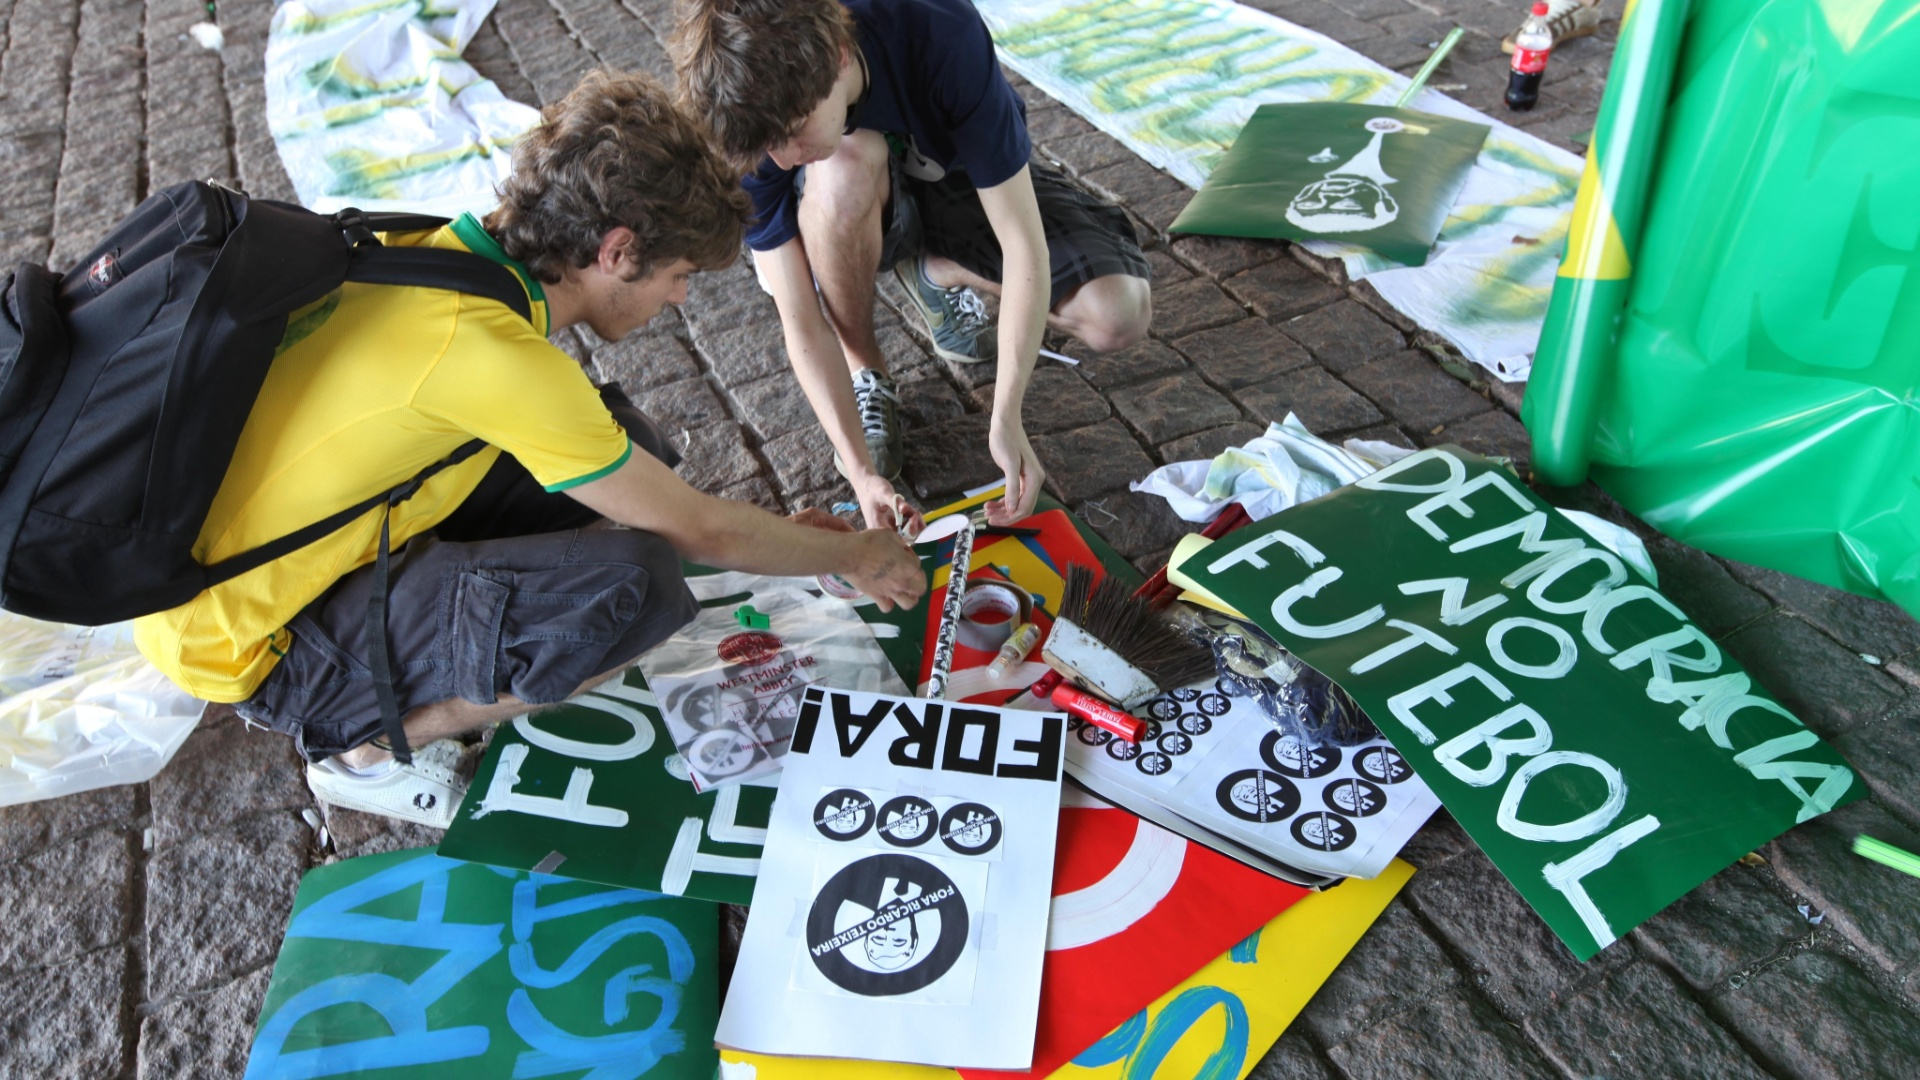 Jovens preparam as placas para usar no movimento contra o presidente da CBF em So Paulo (13/08/2011)